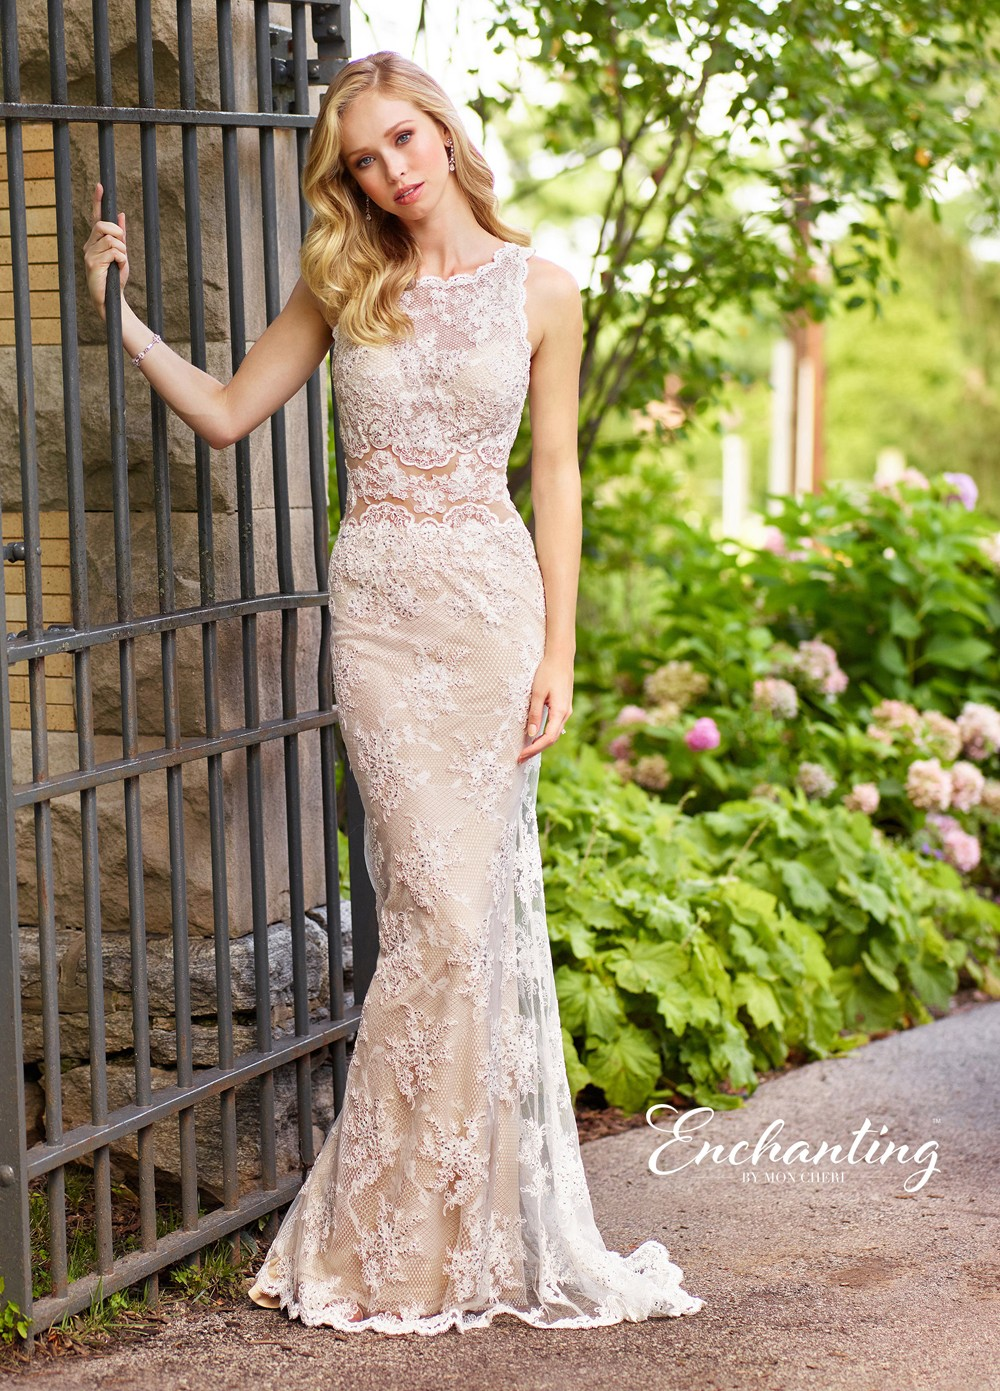 Enchanting by Mon Cheri 118144 Allover Lace Casual Wedding Dress ...